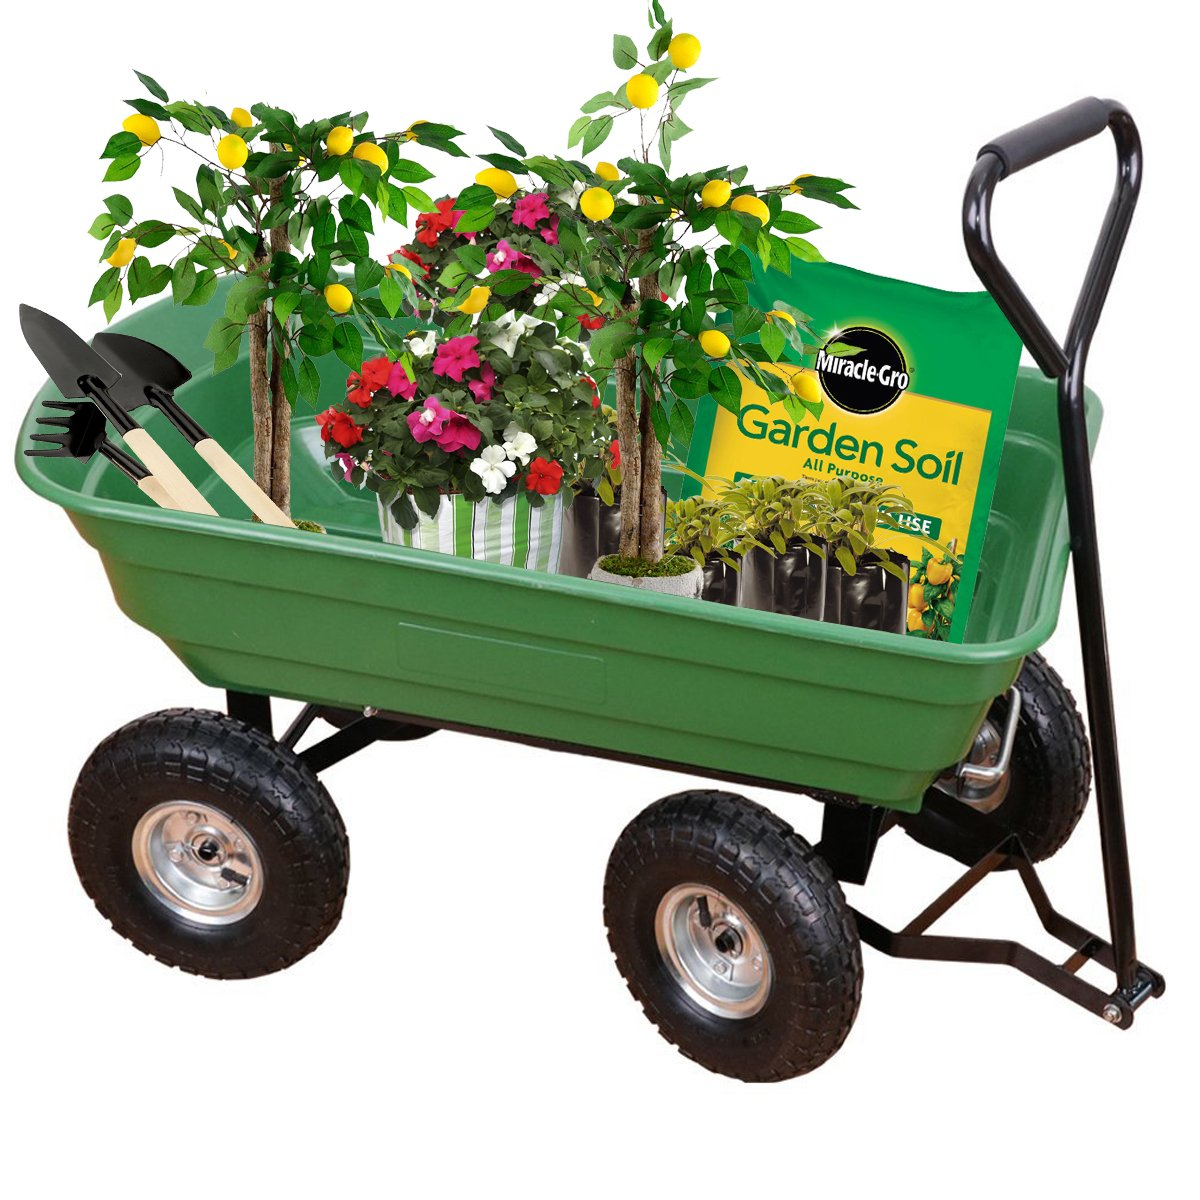 Yardeen Poly Garden Dump Utility Cart Wagon Carrier with Steel Frame 10-in Pneumatic Tires 650 lb Capacity Green